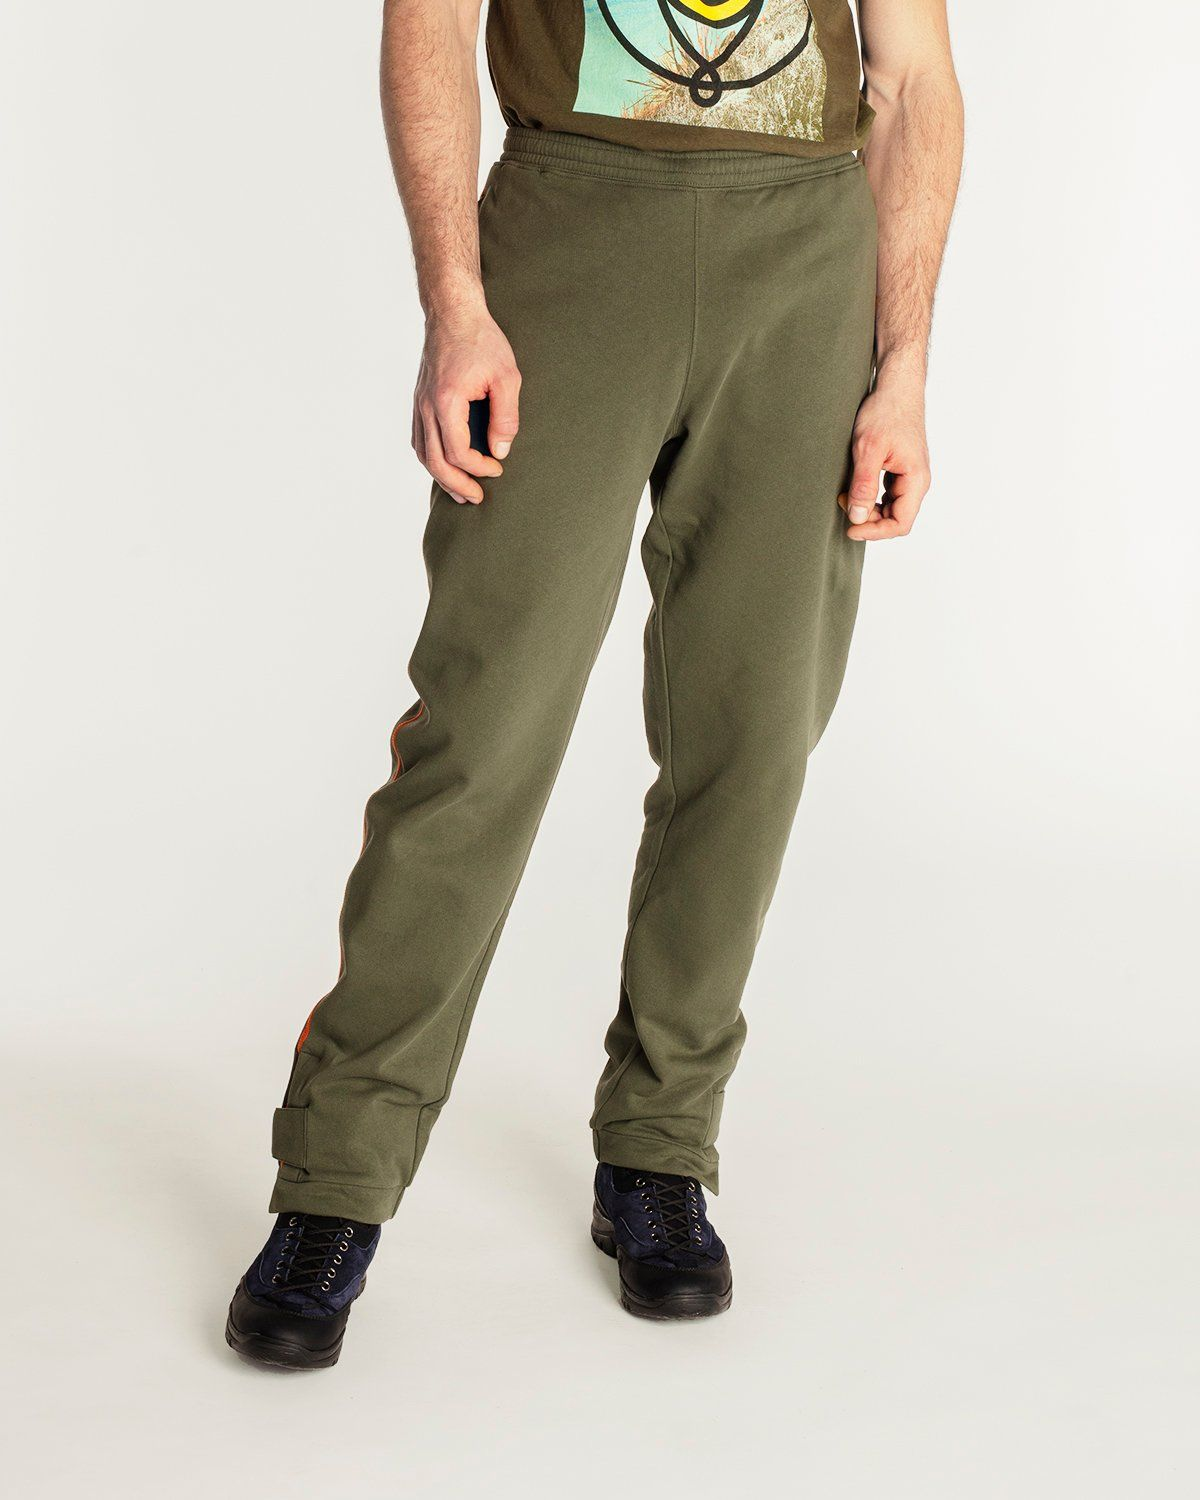 EYE/LOEWE/NATURE FLEECE TROUSERS - Image 3